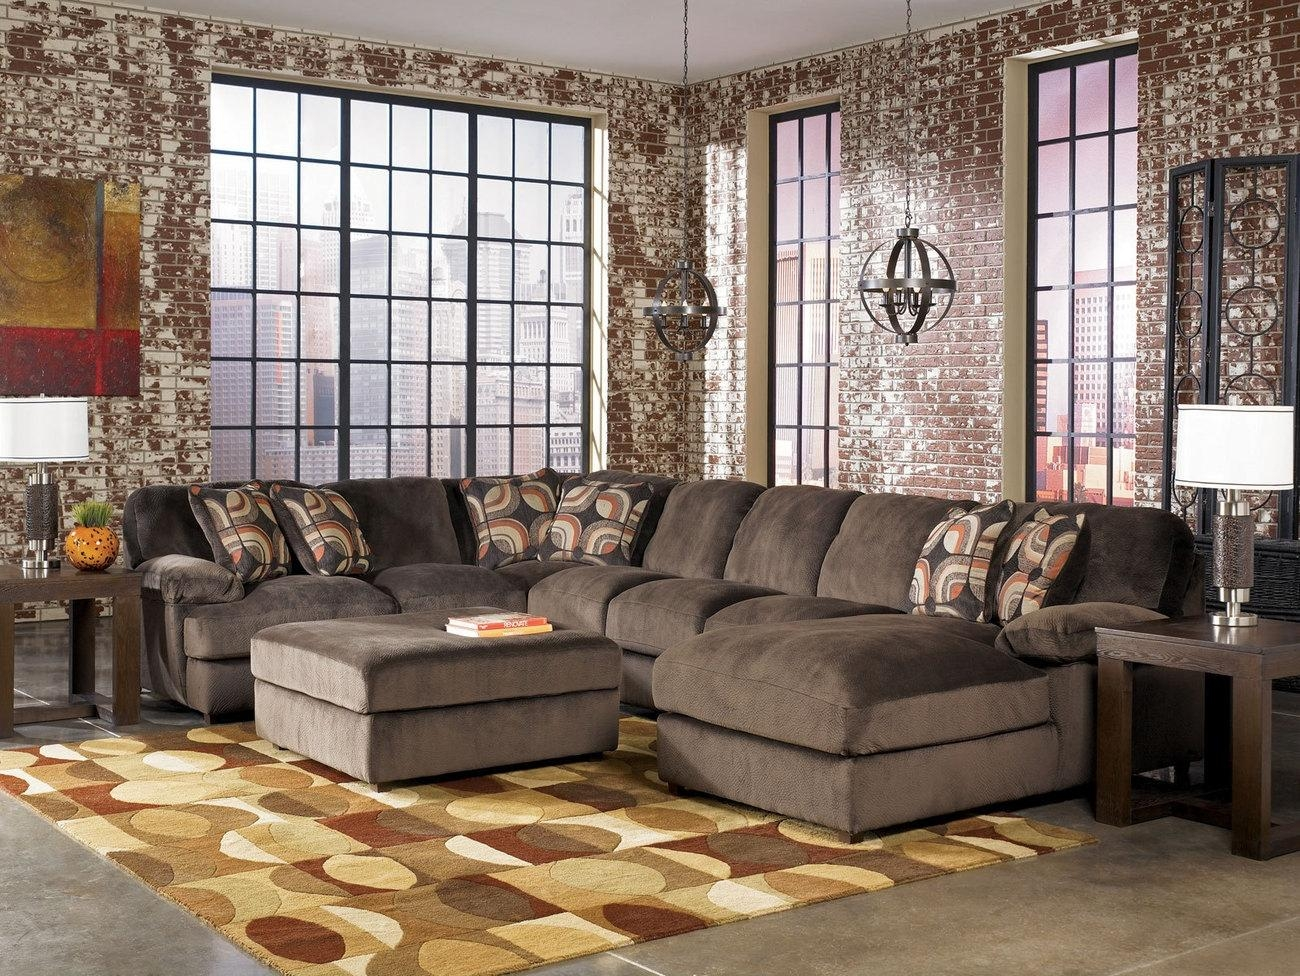 Sofas Center : Contemporary Style Living Room Oversized Sectional Pertaining To Oversized Sectional Sofa (View 5 of 20)